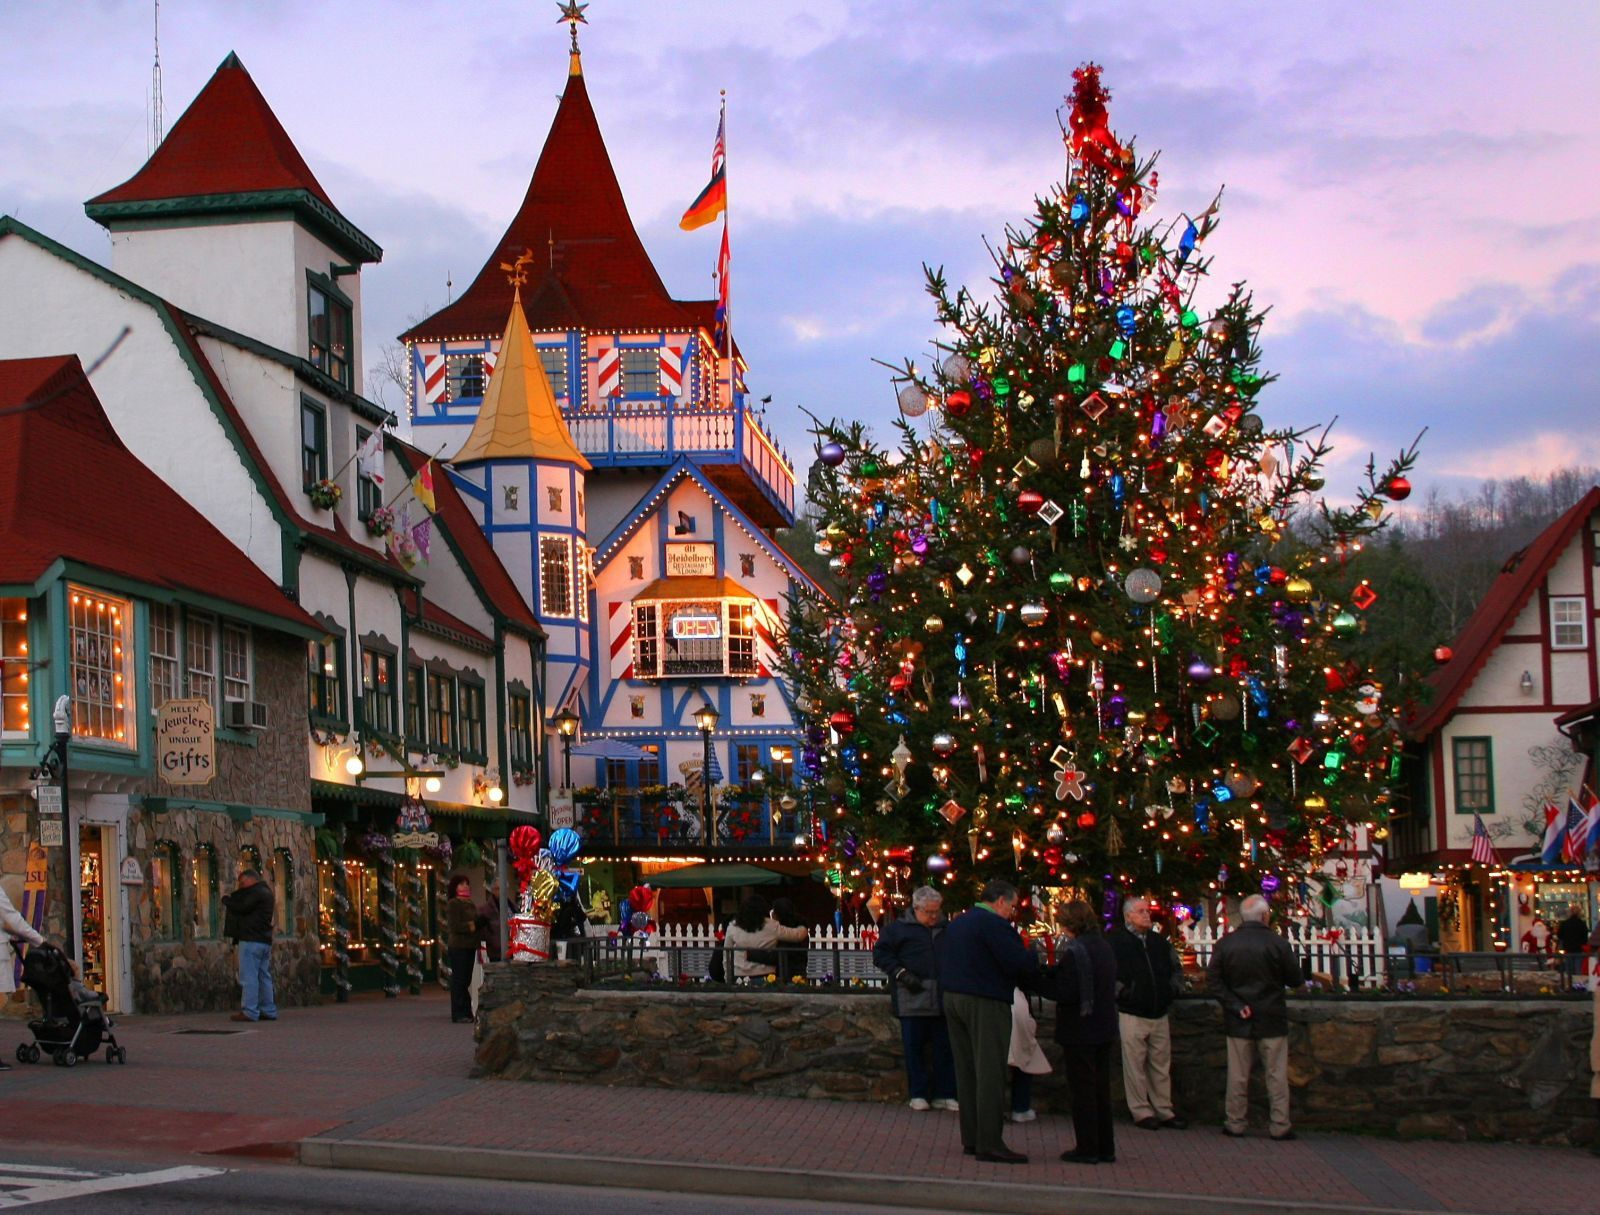 Best Christmas Vacations.45 Best Christmas Towns To Visit For The Holidays Best